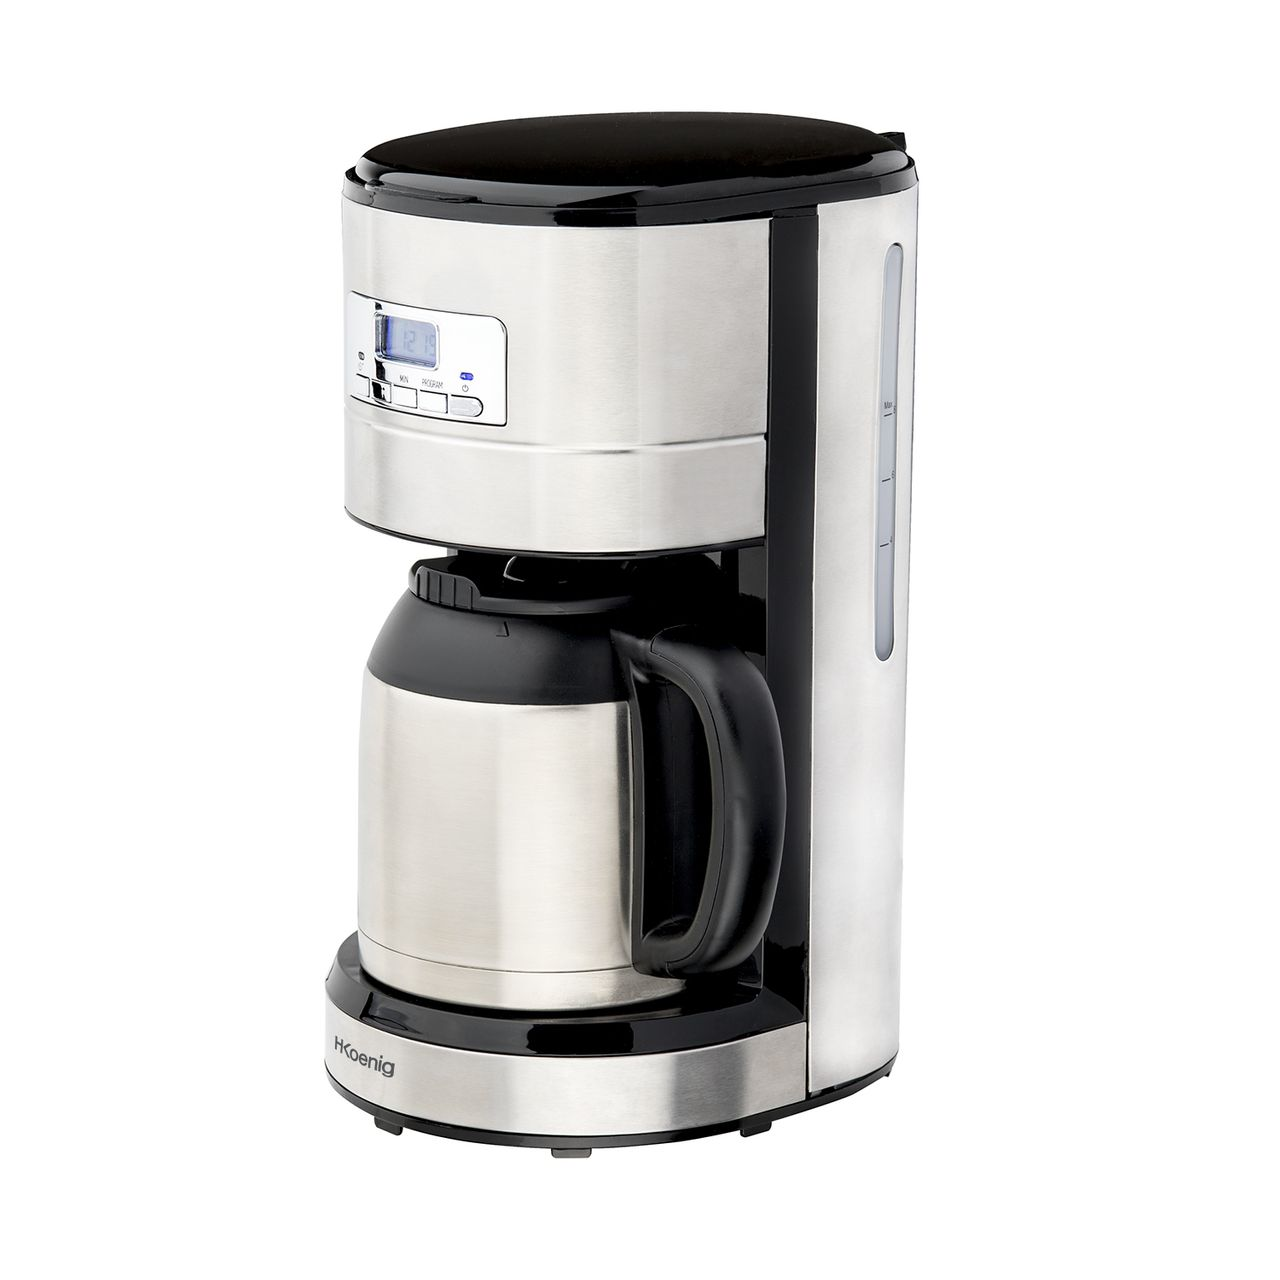 h koenig filter coffee maker programmable 1 2 l keep warm